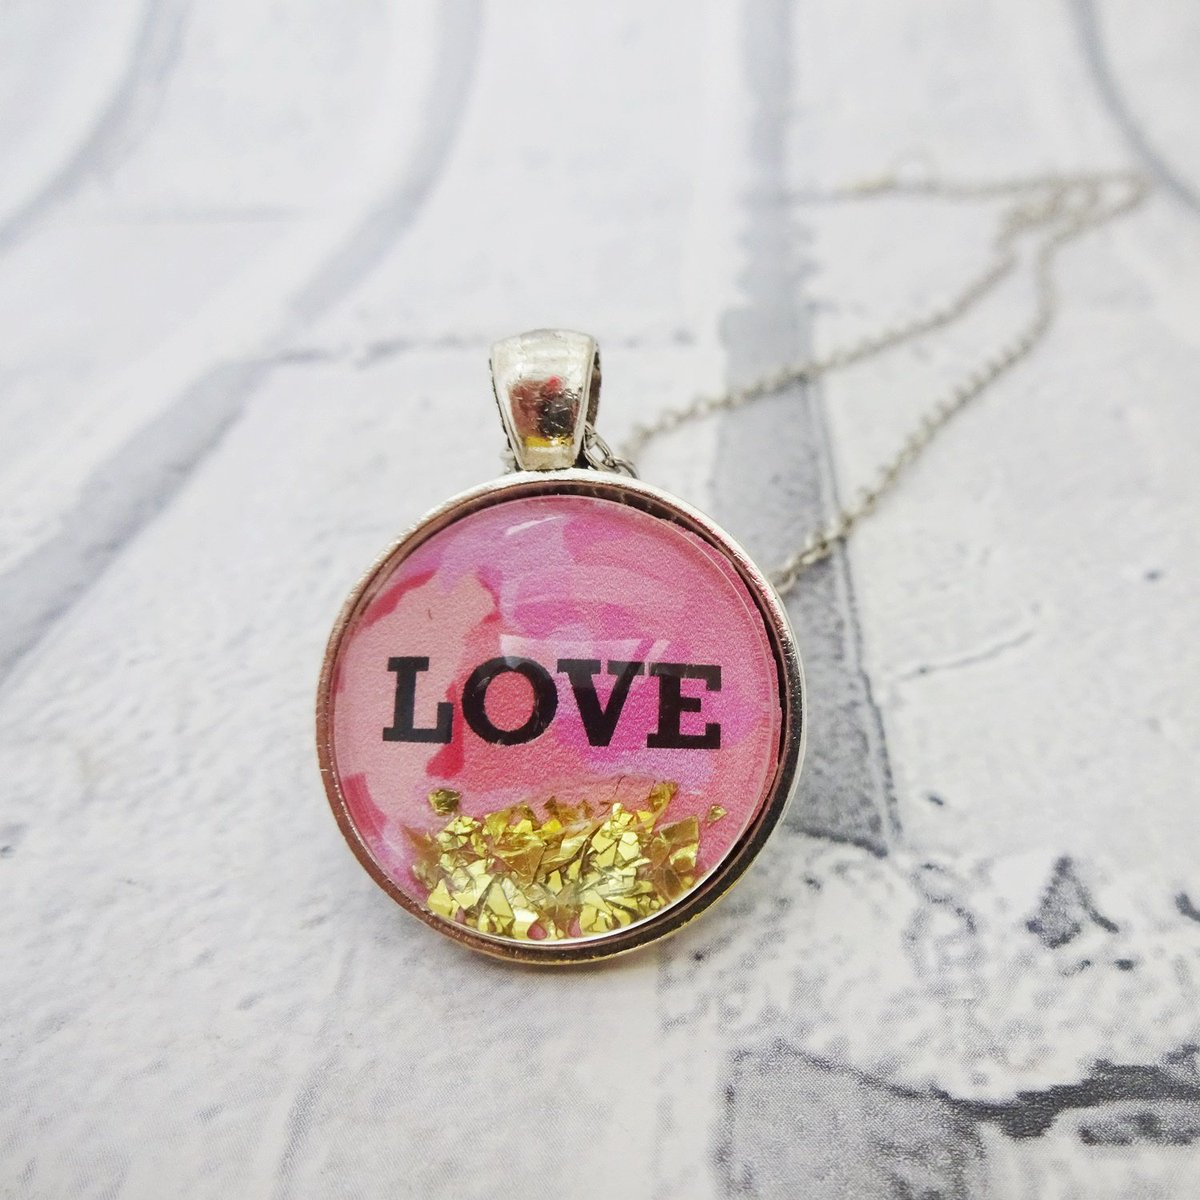 Love quote necklace,Romantic quote pendant,Glass pendant,Romantic gift for her,Love pendant,Love necklace,Valentines,Wedding jewelry,Pink http://tuppu.net/878ba952  #TMTinsta #EtsyTeamUnity #Valentines